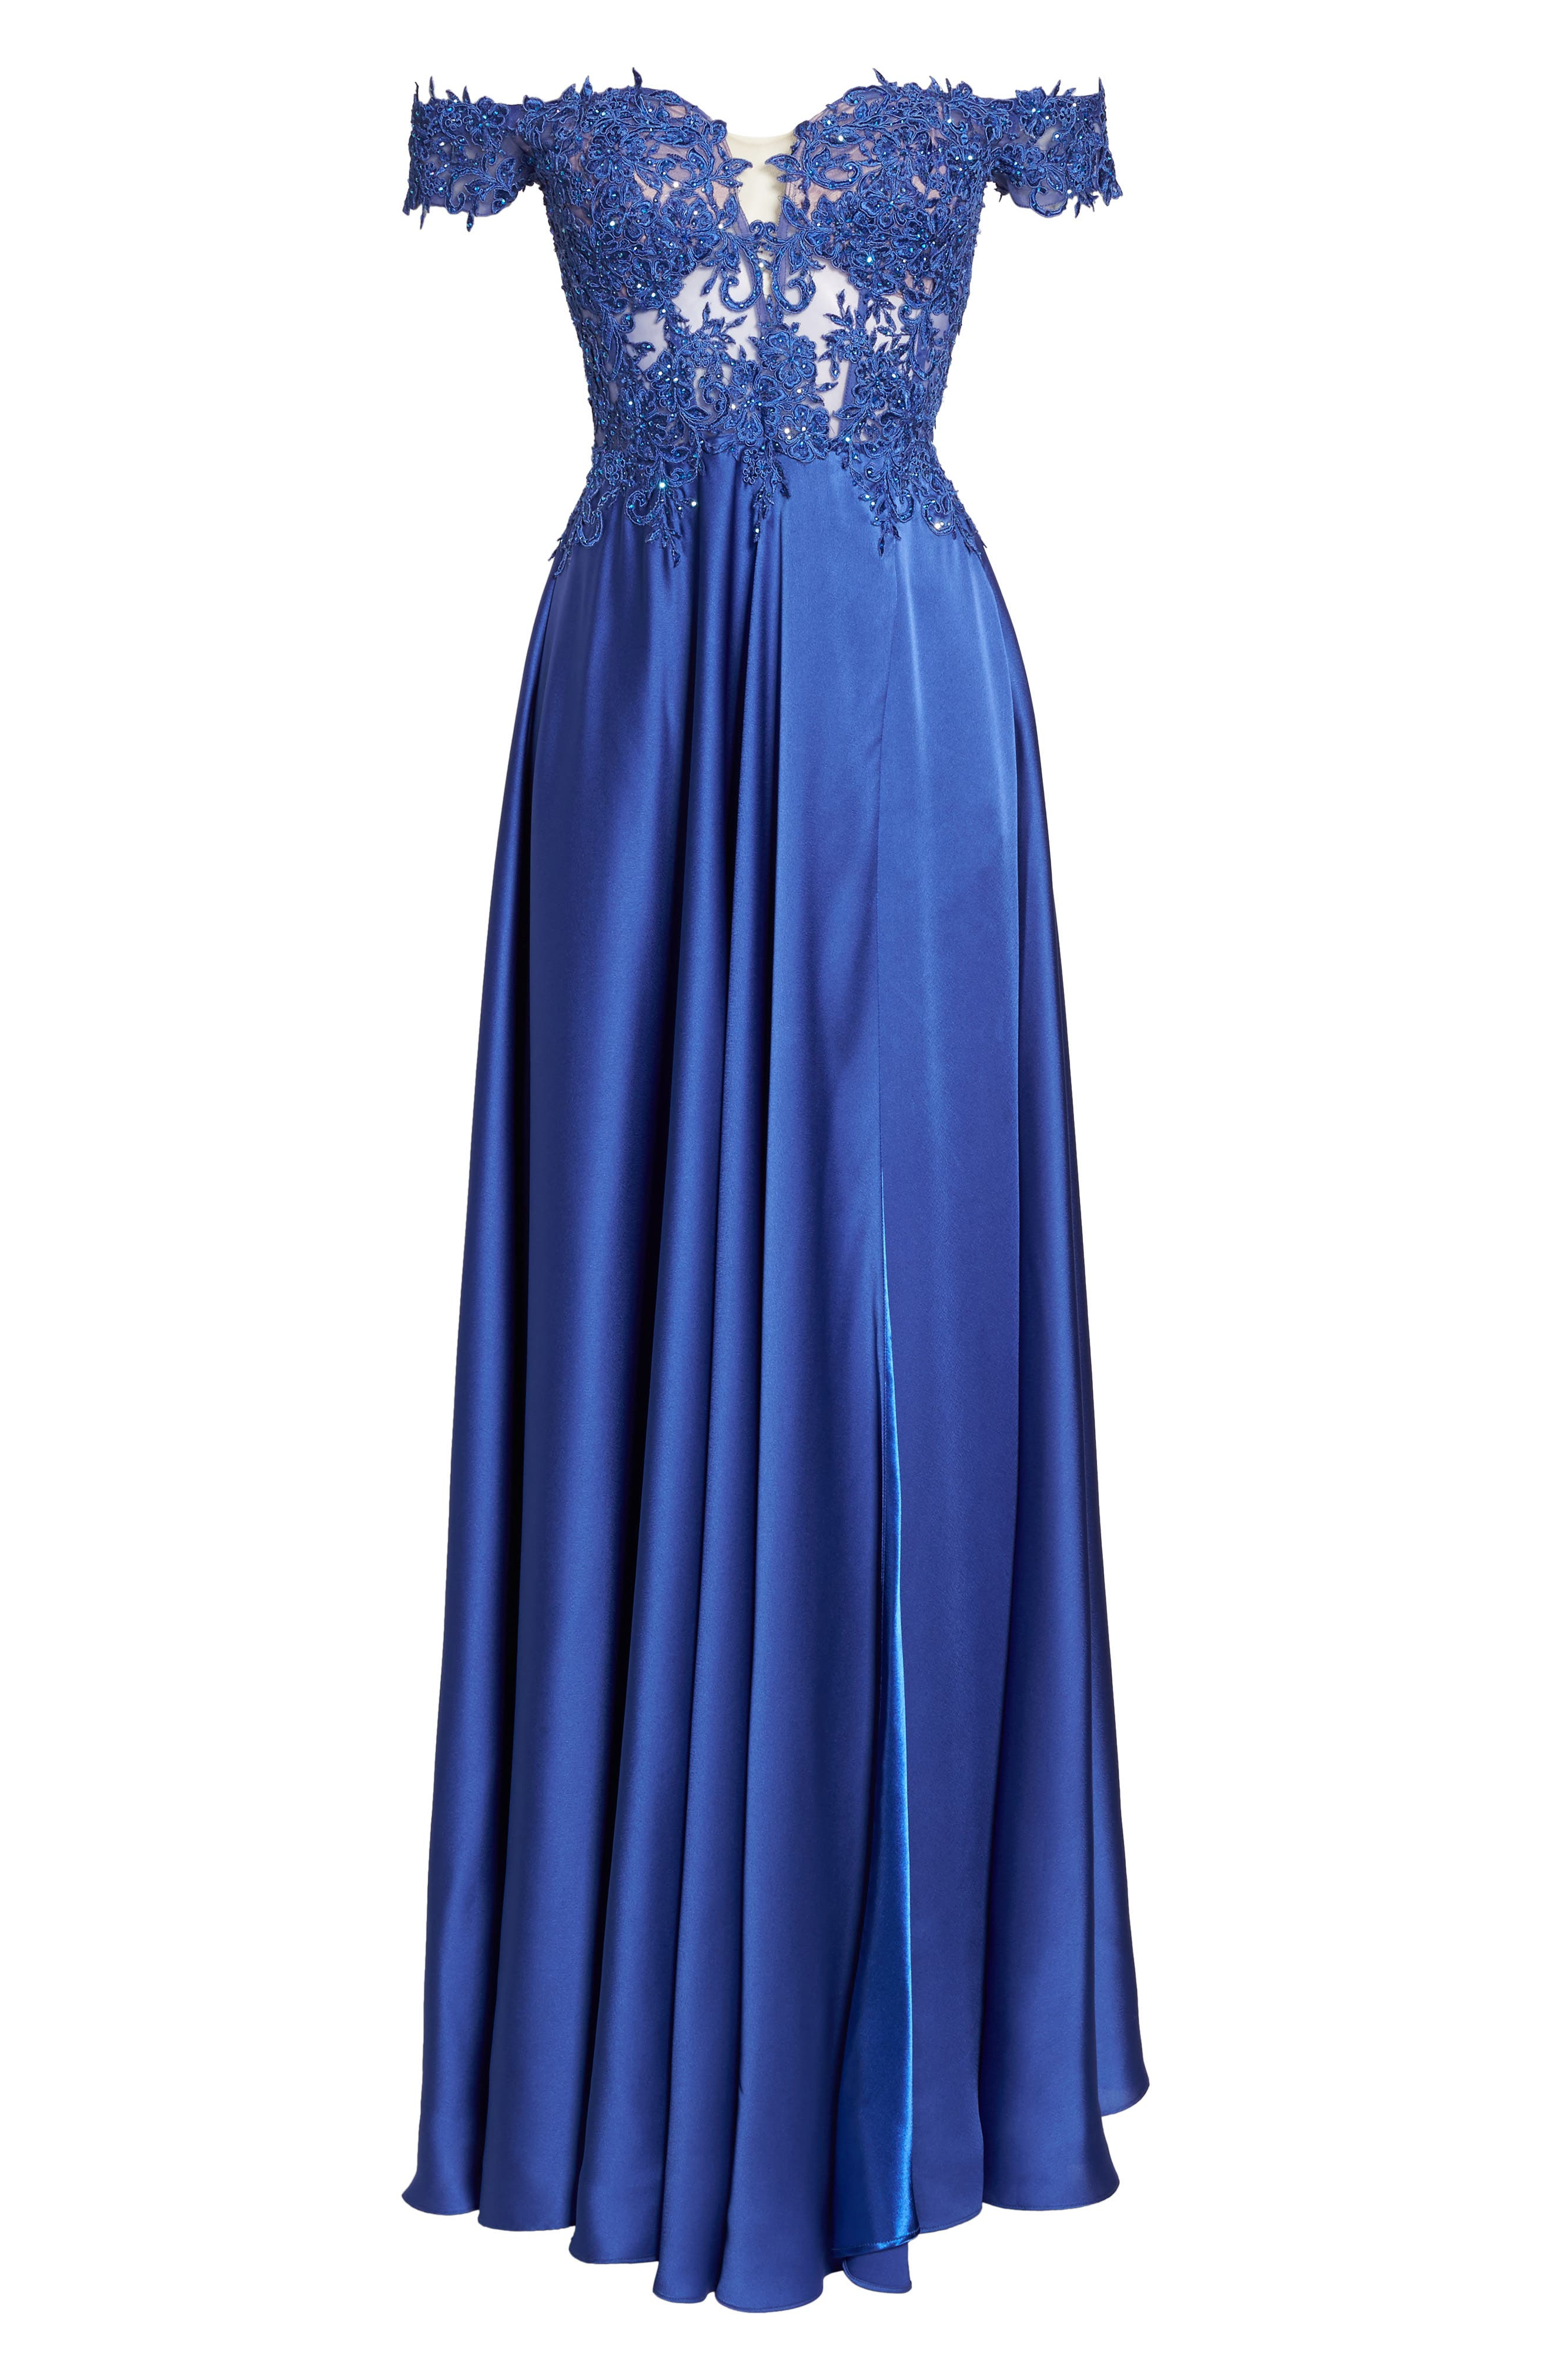 Embroidered Off the Shoulder Satin A-Line Gown,                             Alternate thumbnail 6, color,                             400